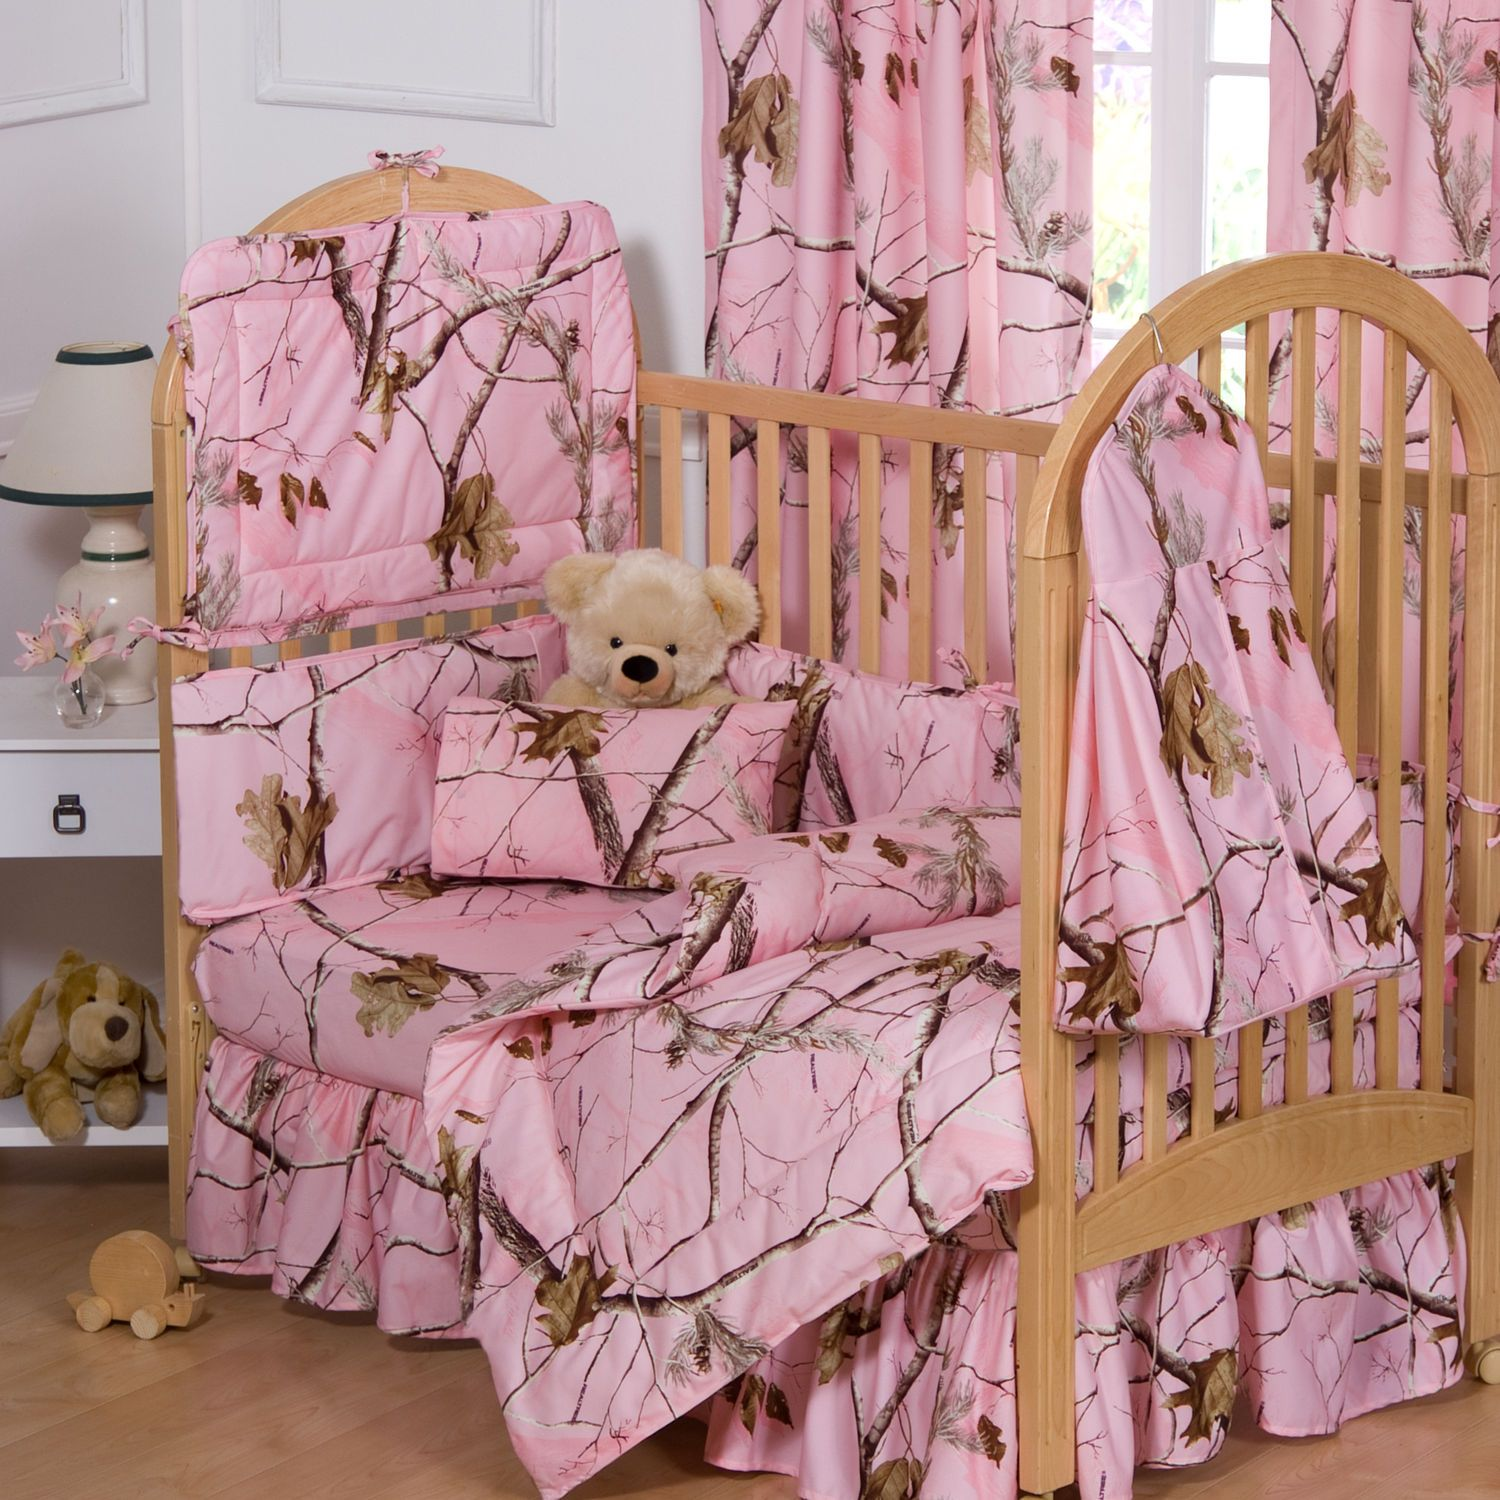 Realtree Pink Camo Crib Bedding Set The Fairy Tale Princess In